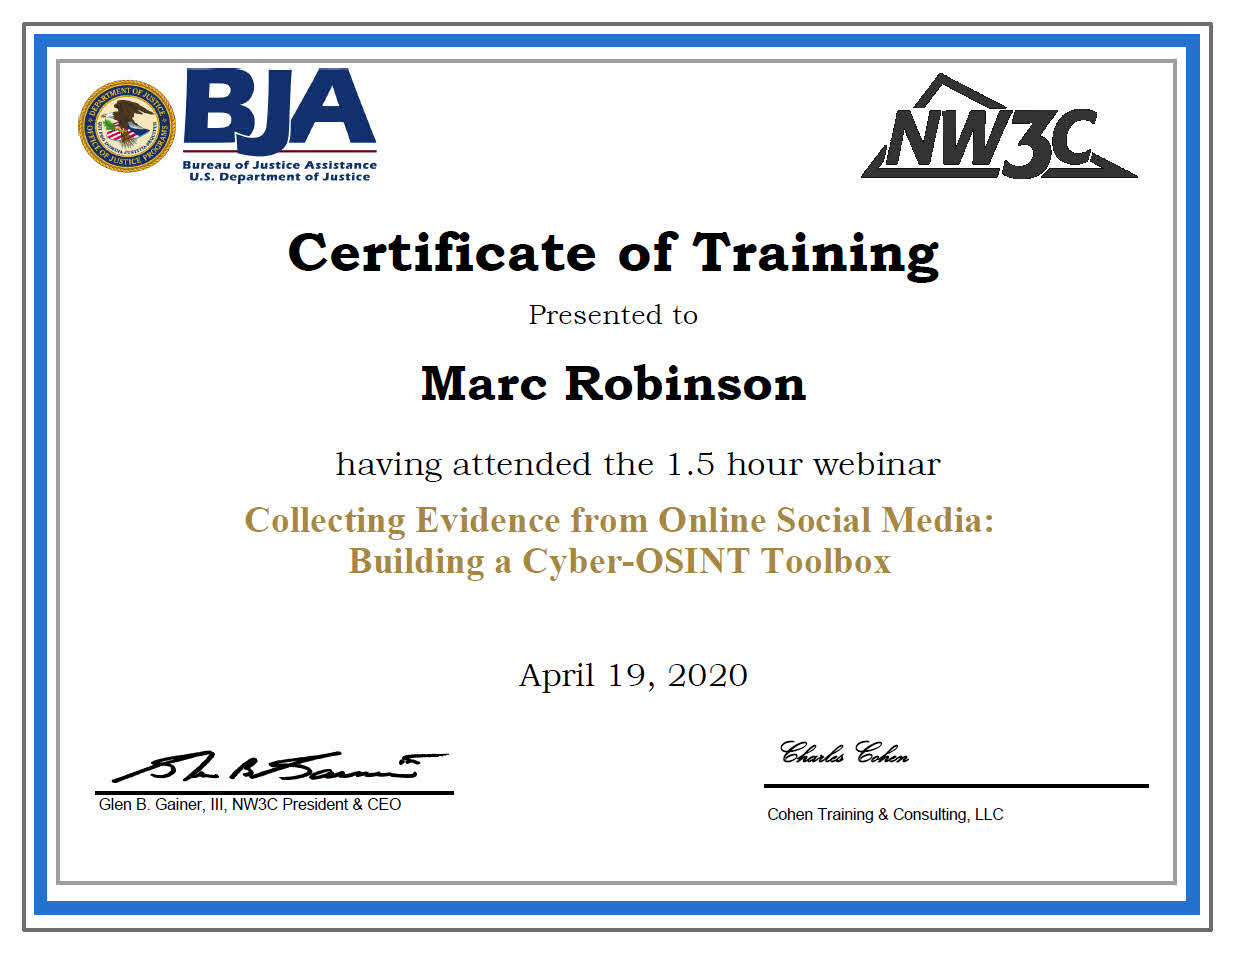 US Department of Justice Training Certificate for Marc Robinson